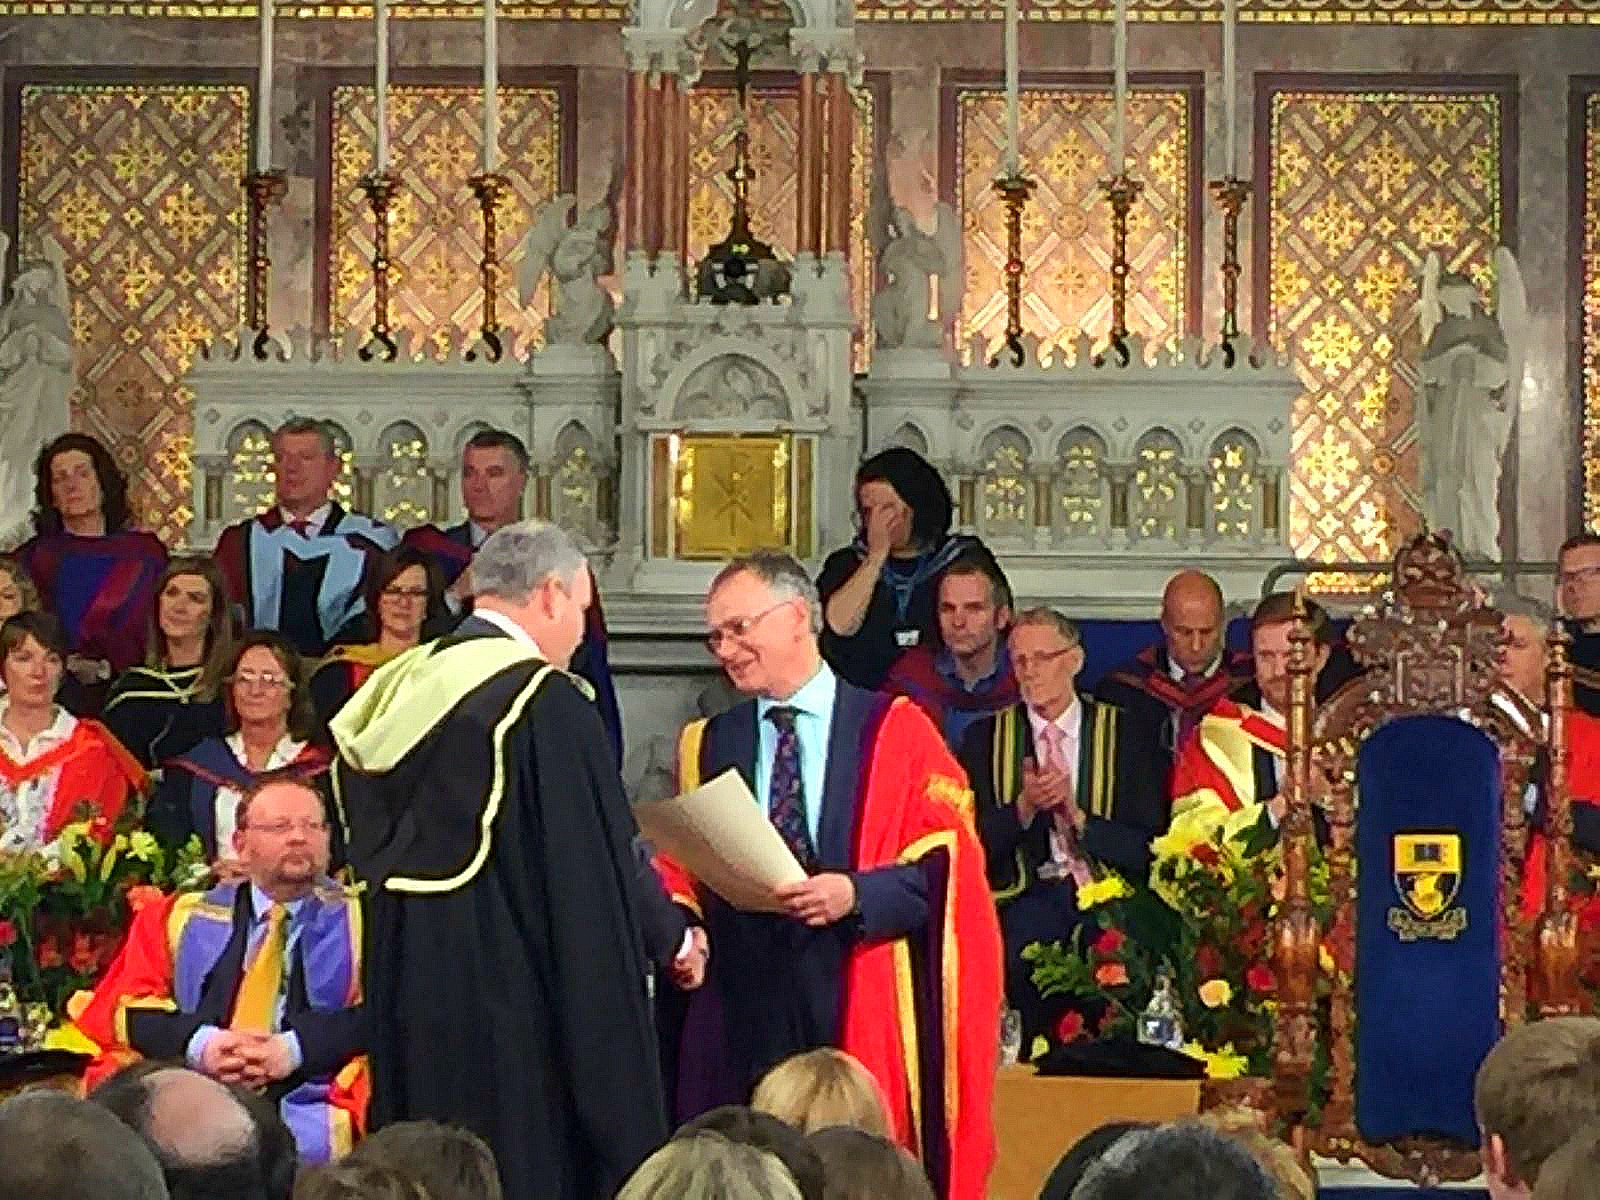 tom o brien construction first class honours our managing director tom o brien from all the team here at tom o brien construction on his recent graduation tom received a 1 1 first class honours in